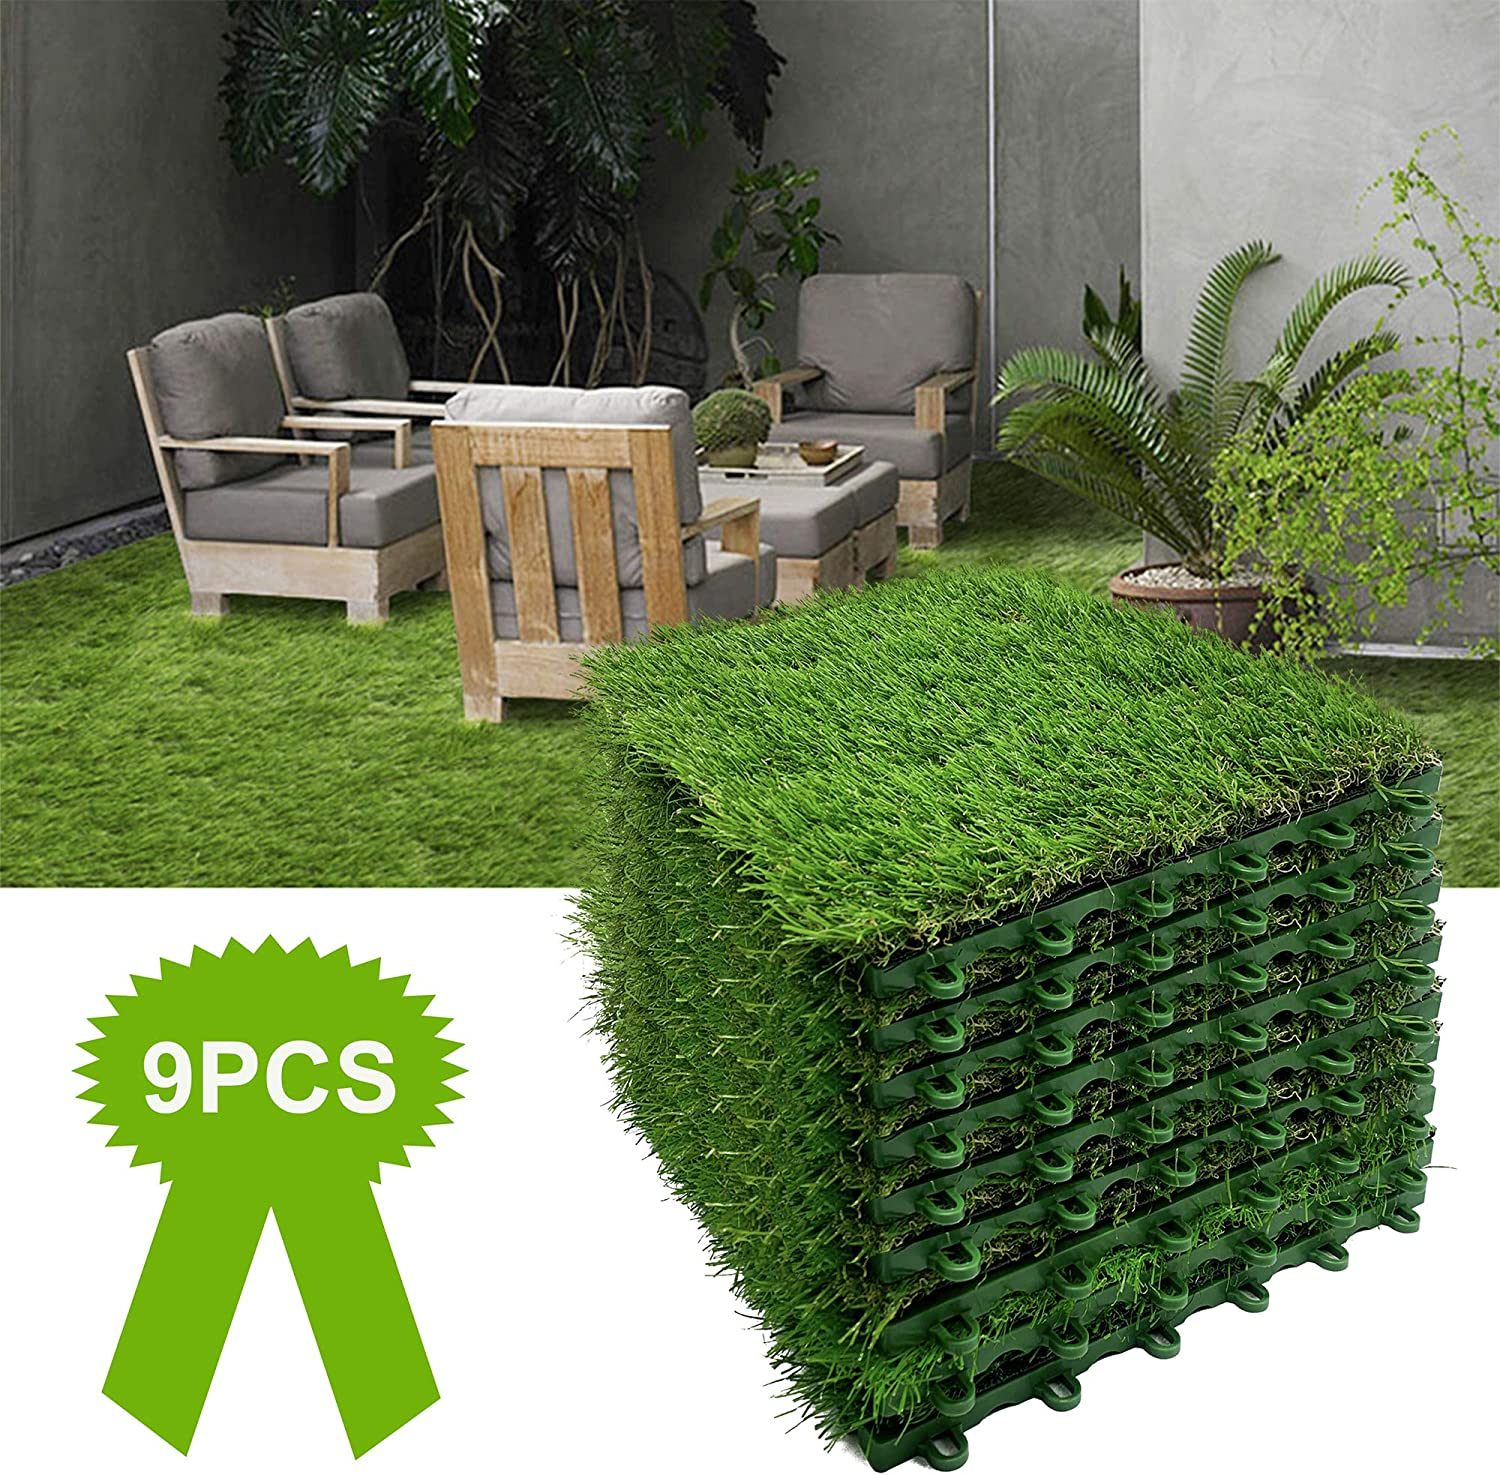 1FT X 1FT 9PCS Synthetic Artificial Grass Mat Realistic Grass Turf Indoor Outdoor Carpet Green Tile Lawn Rug for Patio Pet Square Grass with Drain Holes for Garden Home Decoration